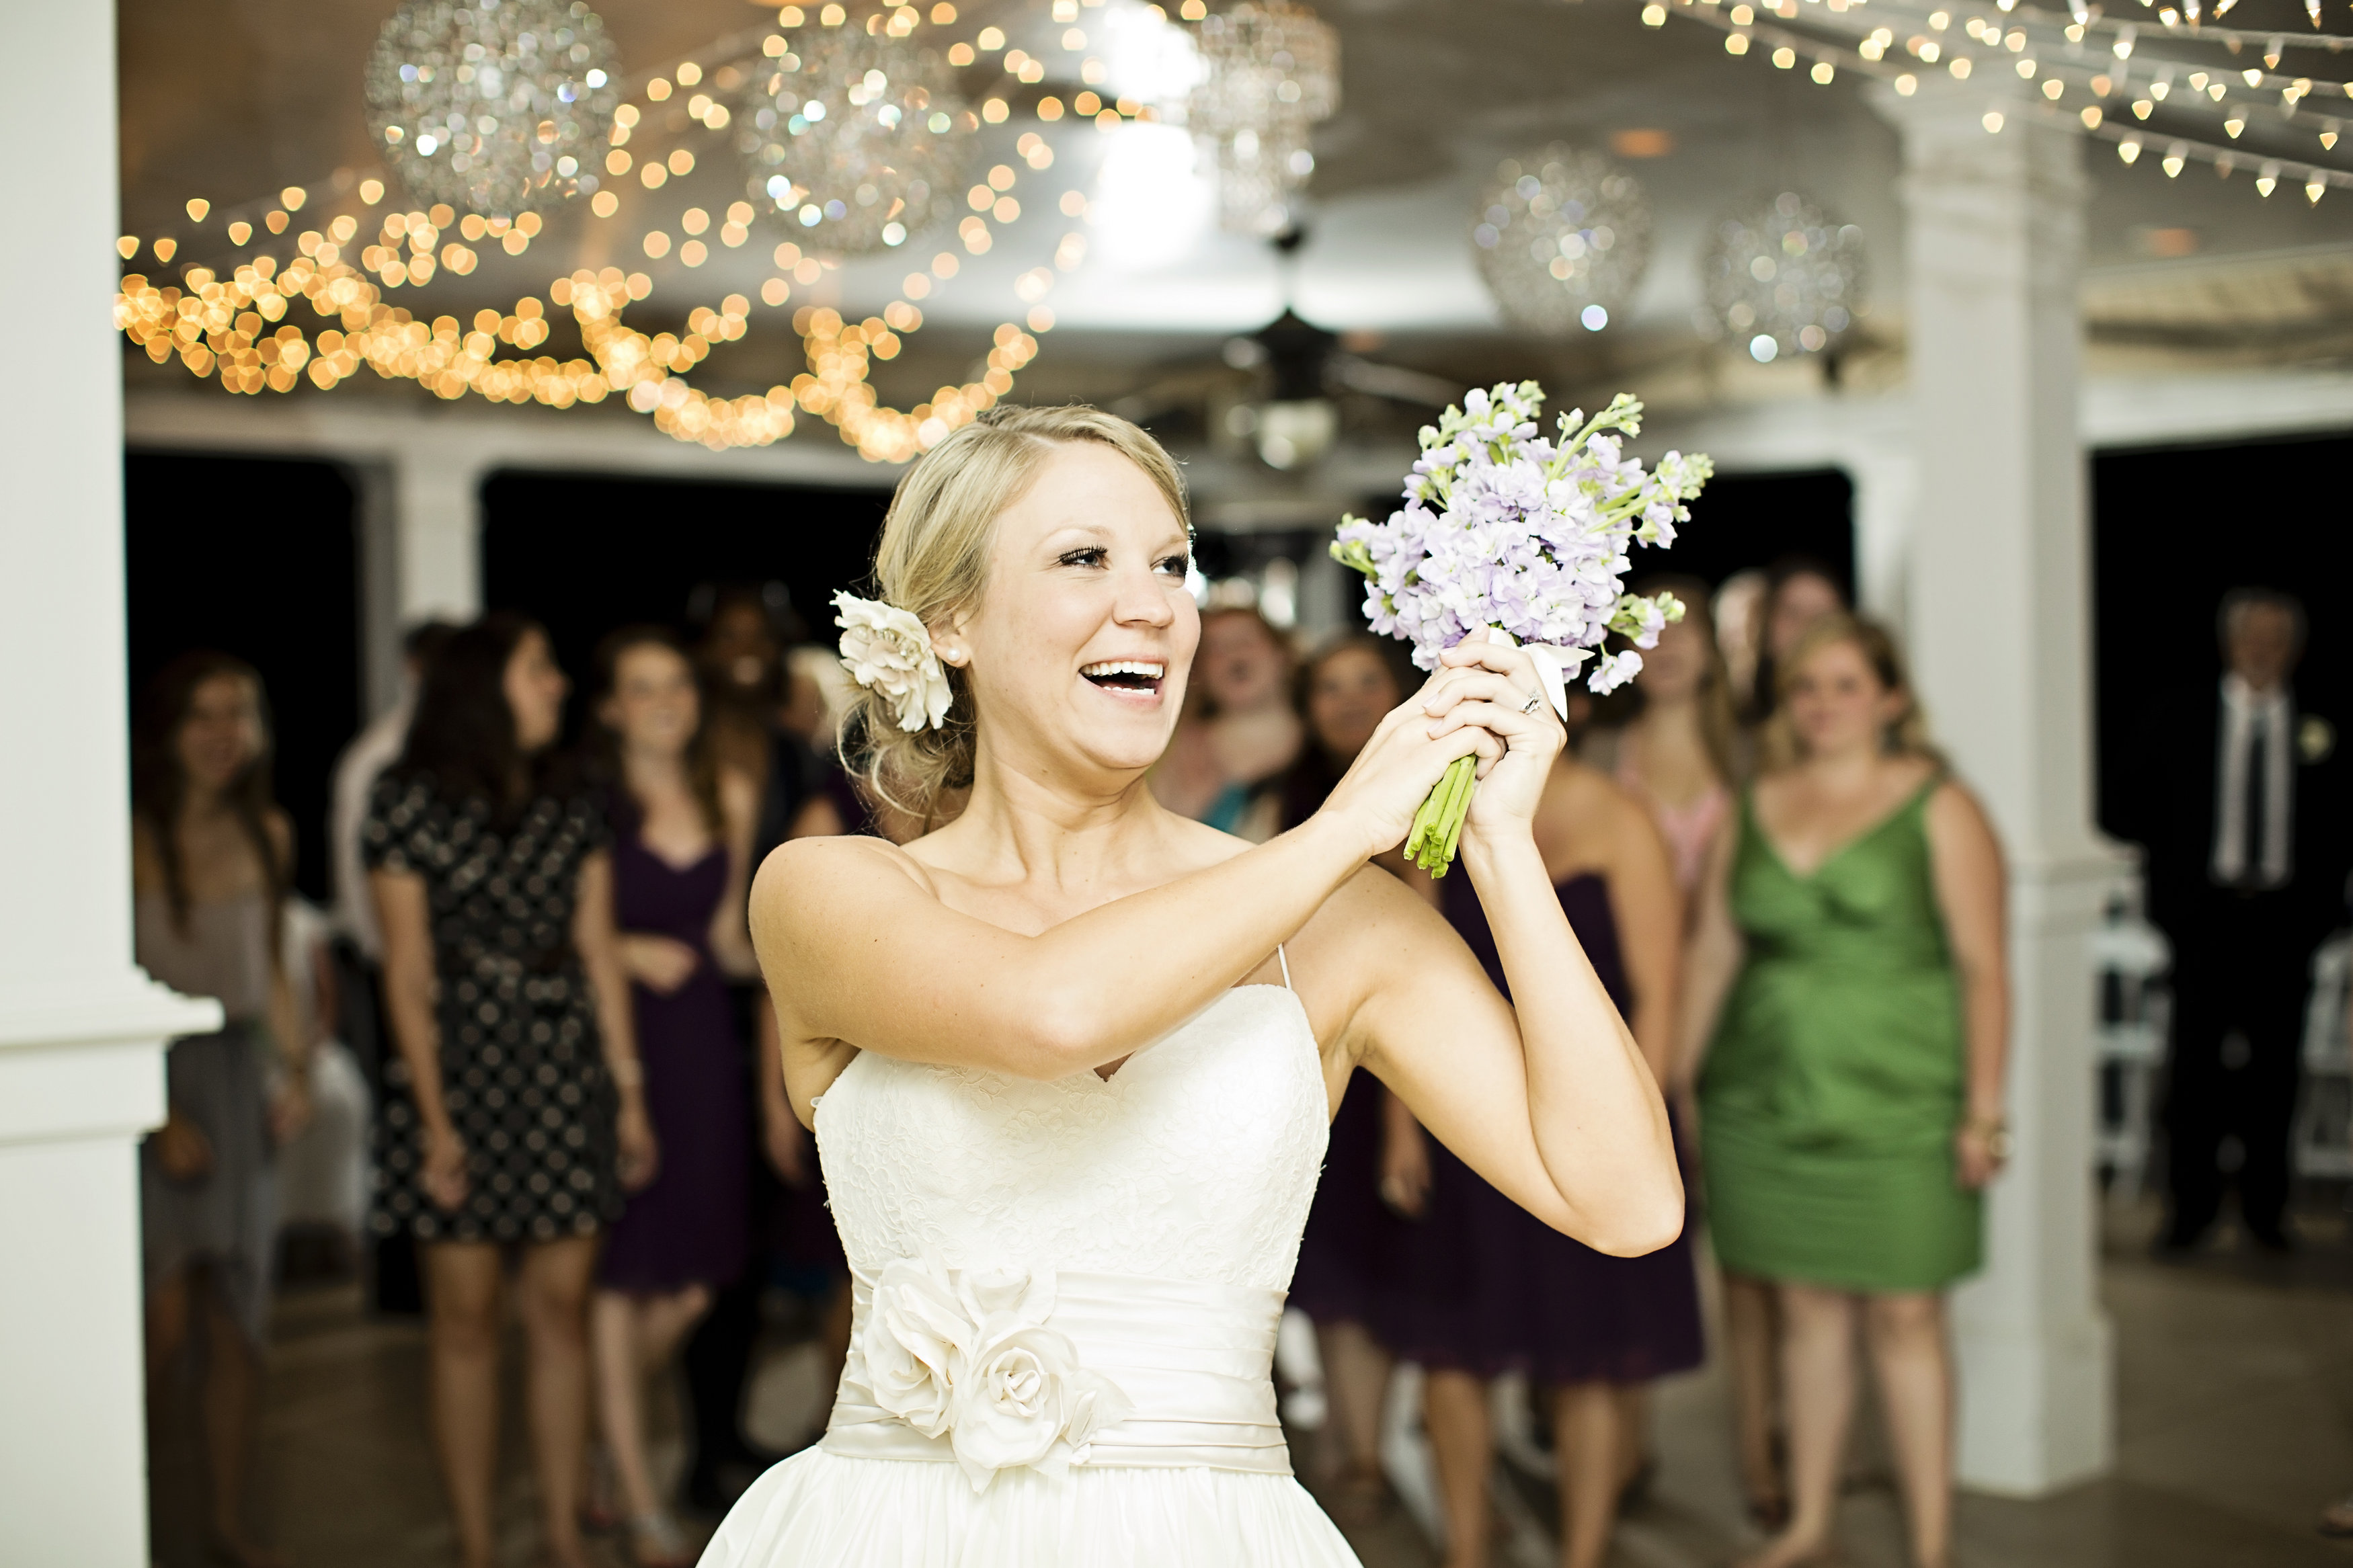 View More: http://jacquierives.pass.us/brittany-alex-wedding-day